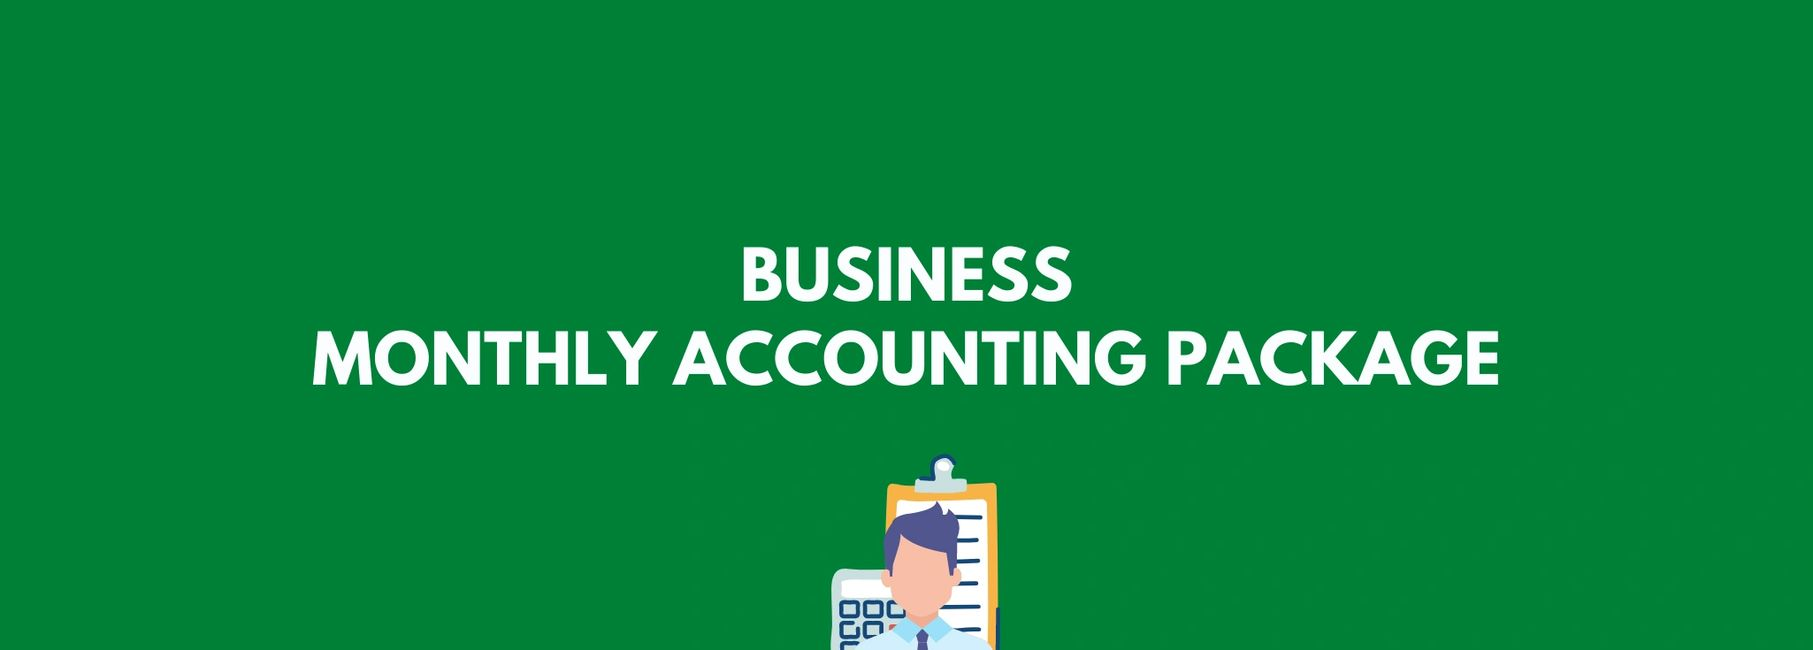 Business Monthly Accounting Package